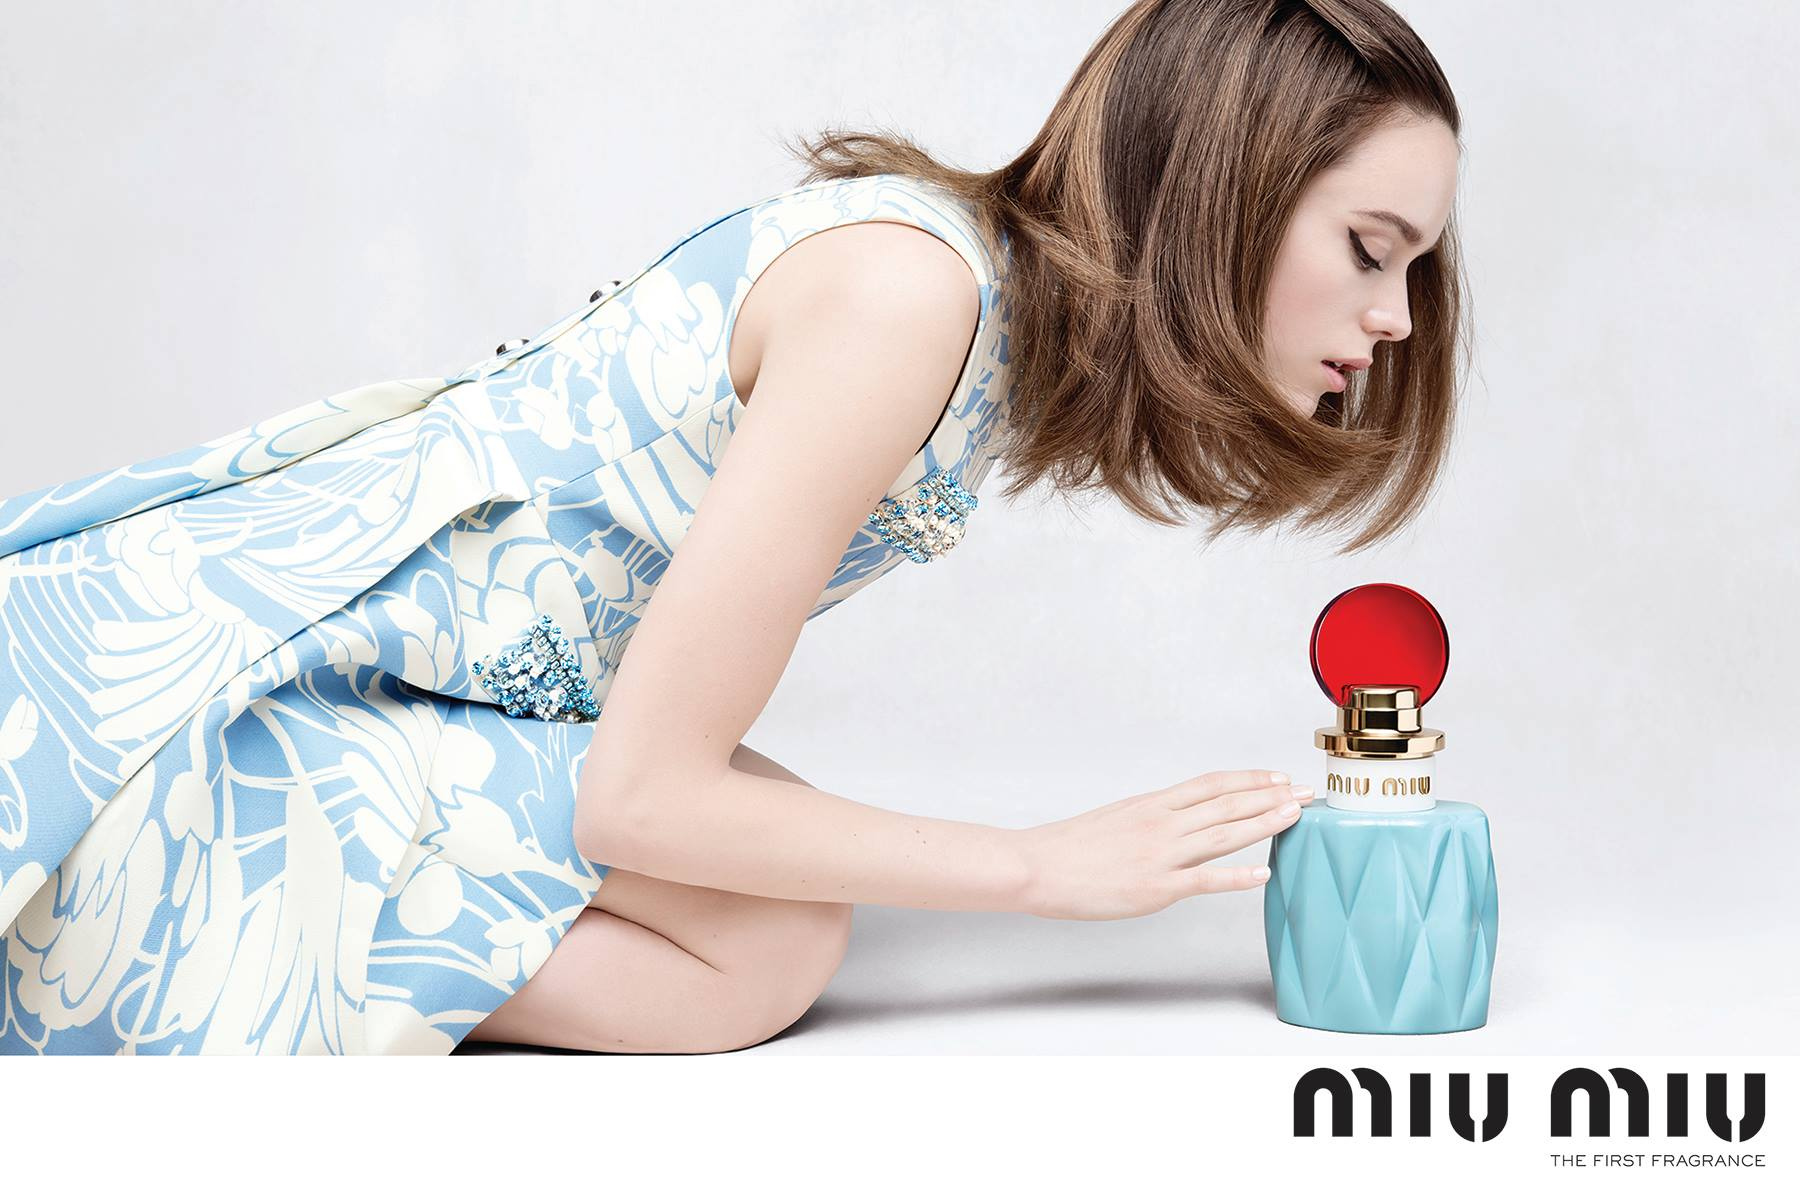 Miu Miu's first fragrance is more than a pretty scent…